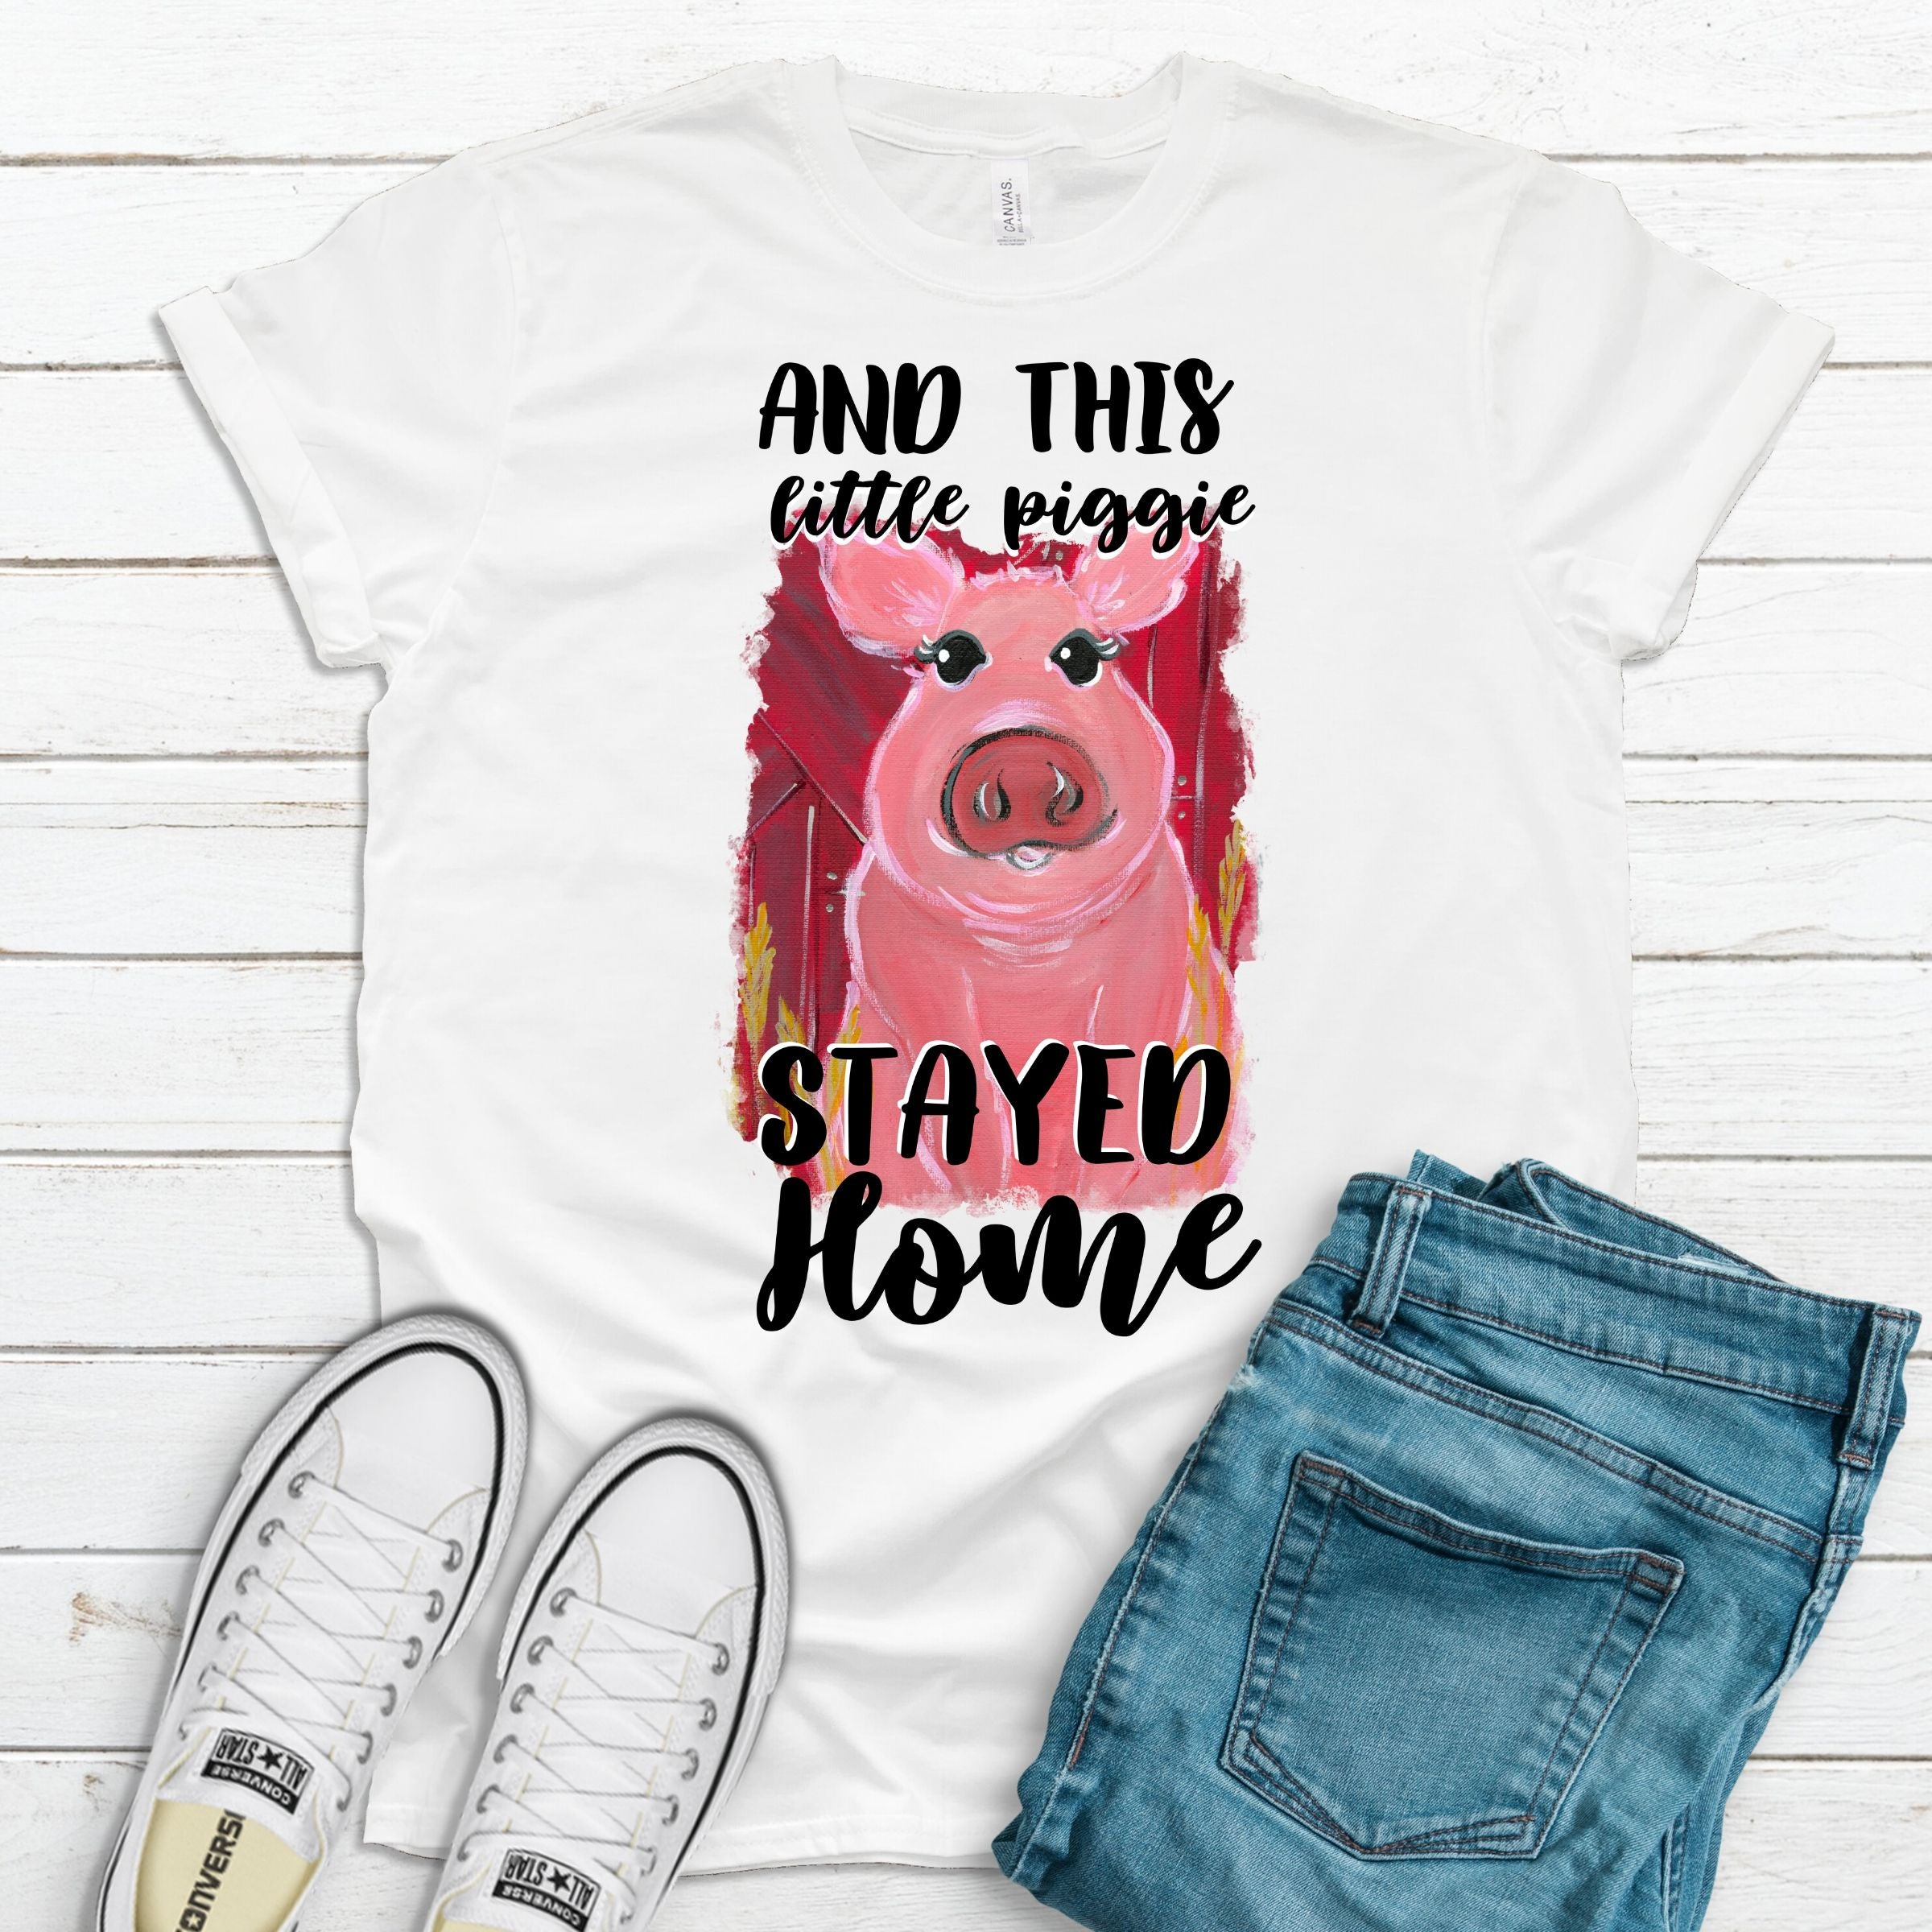 S - And This Little Piggie Stayed Home - White-Shop-Wholesale-Womens-Boutique-Custom-Graphic-Tees-Branding-Gifts